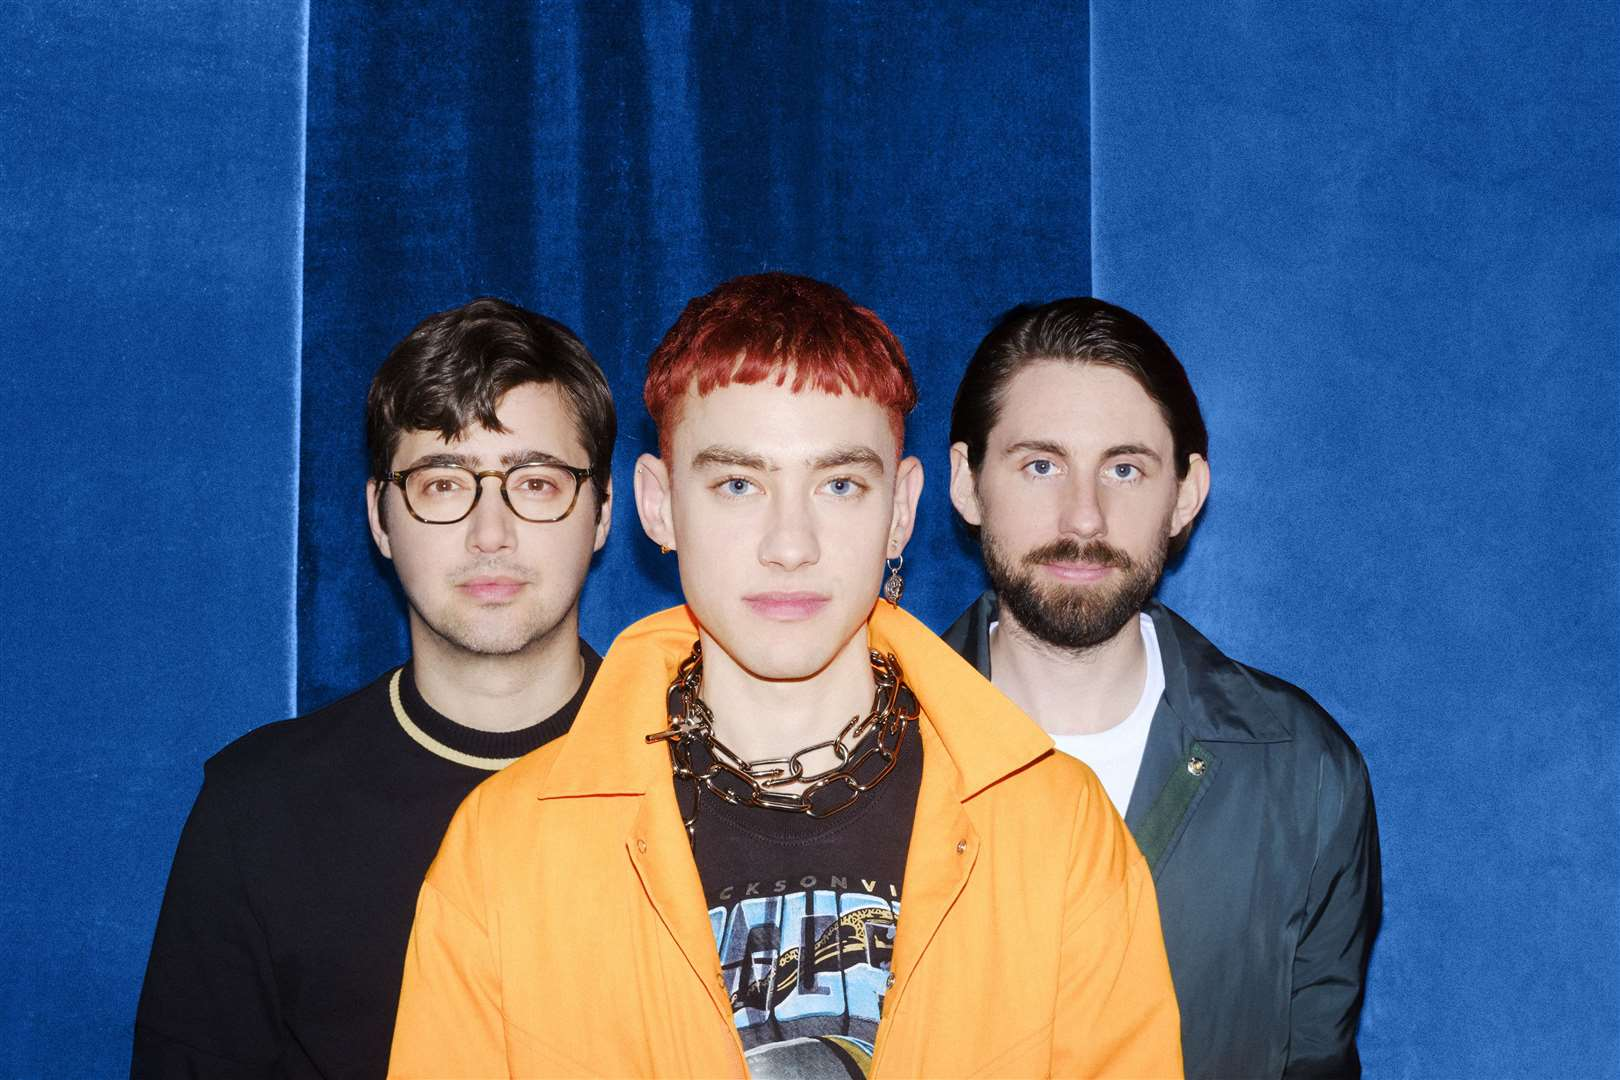 Years & Years performed at Newmarket Racecourses on Friday, August 16.